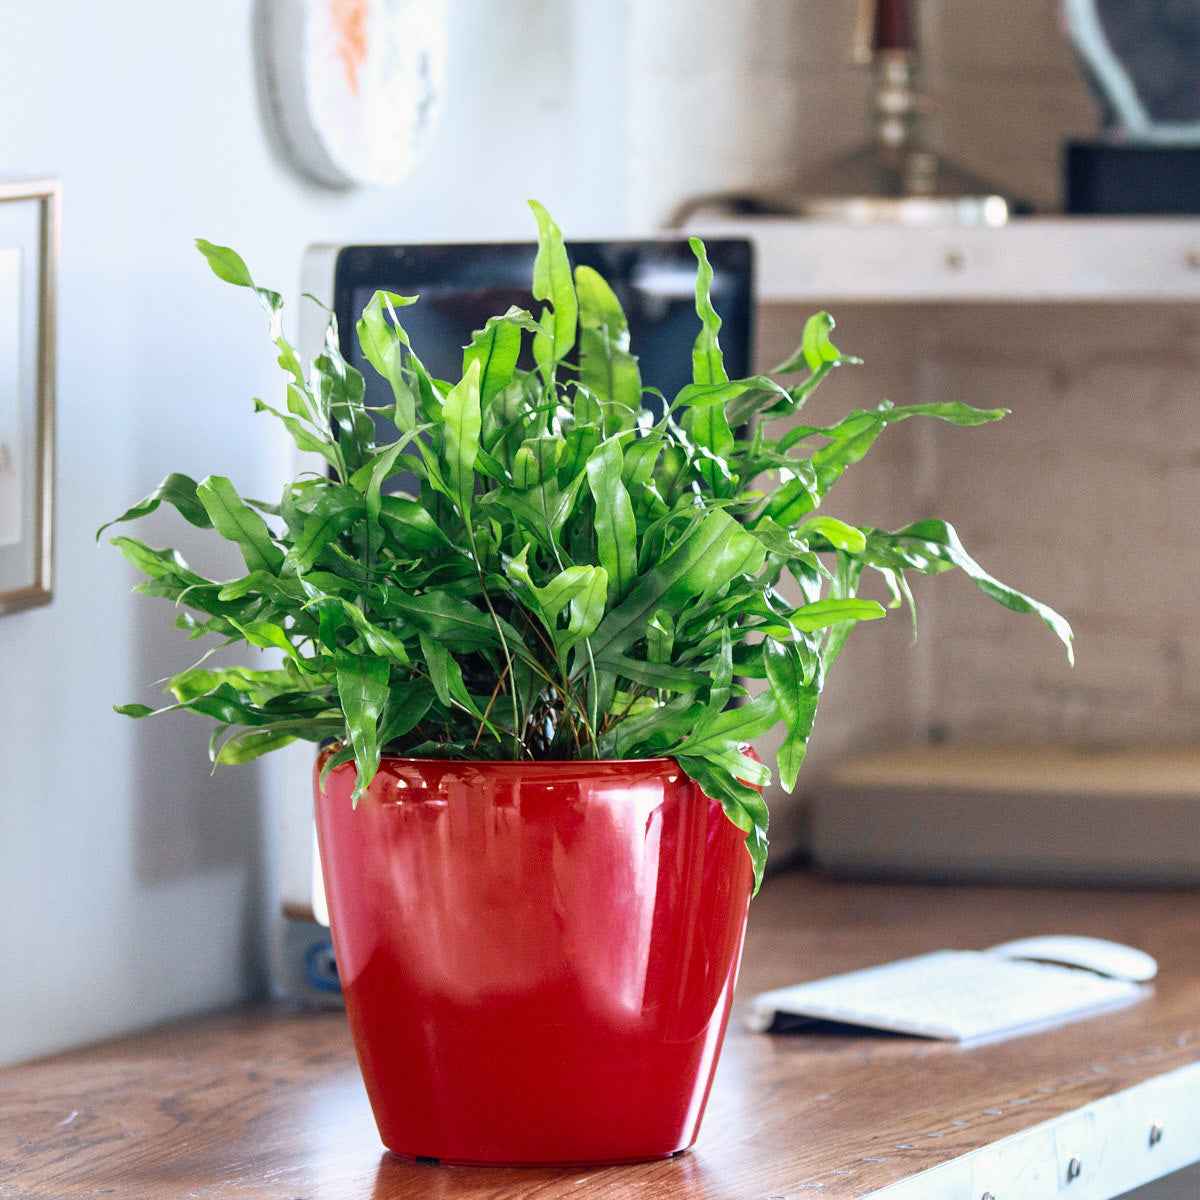 Kangaroo Paw fern potted in Lechuza Classico mini red planter - My City Plants